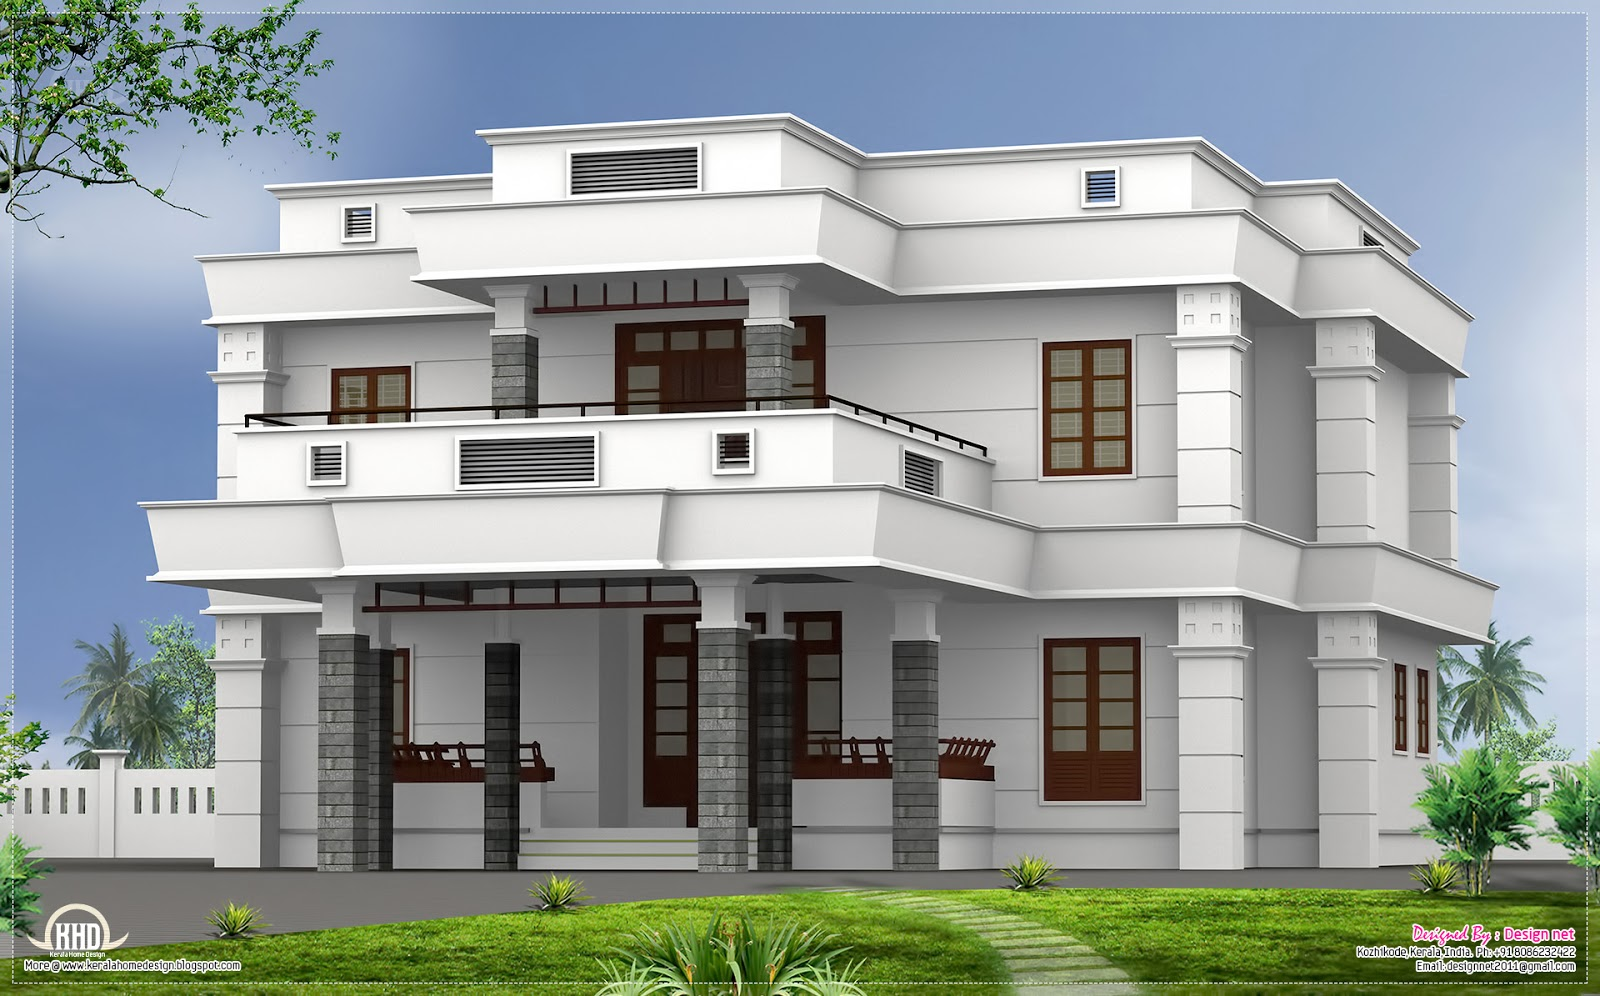 5 BHK modern flat roof house design | Home Kerala Plans